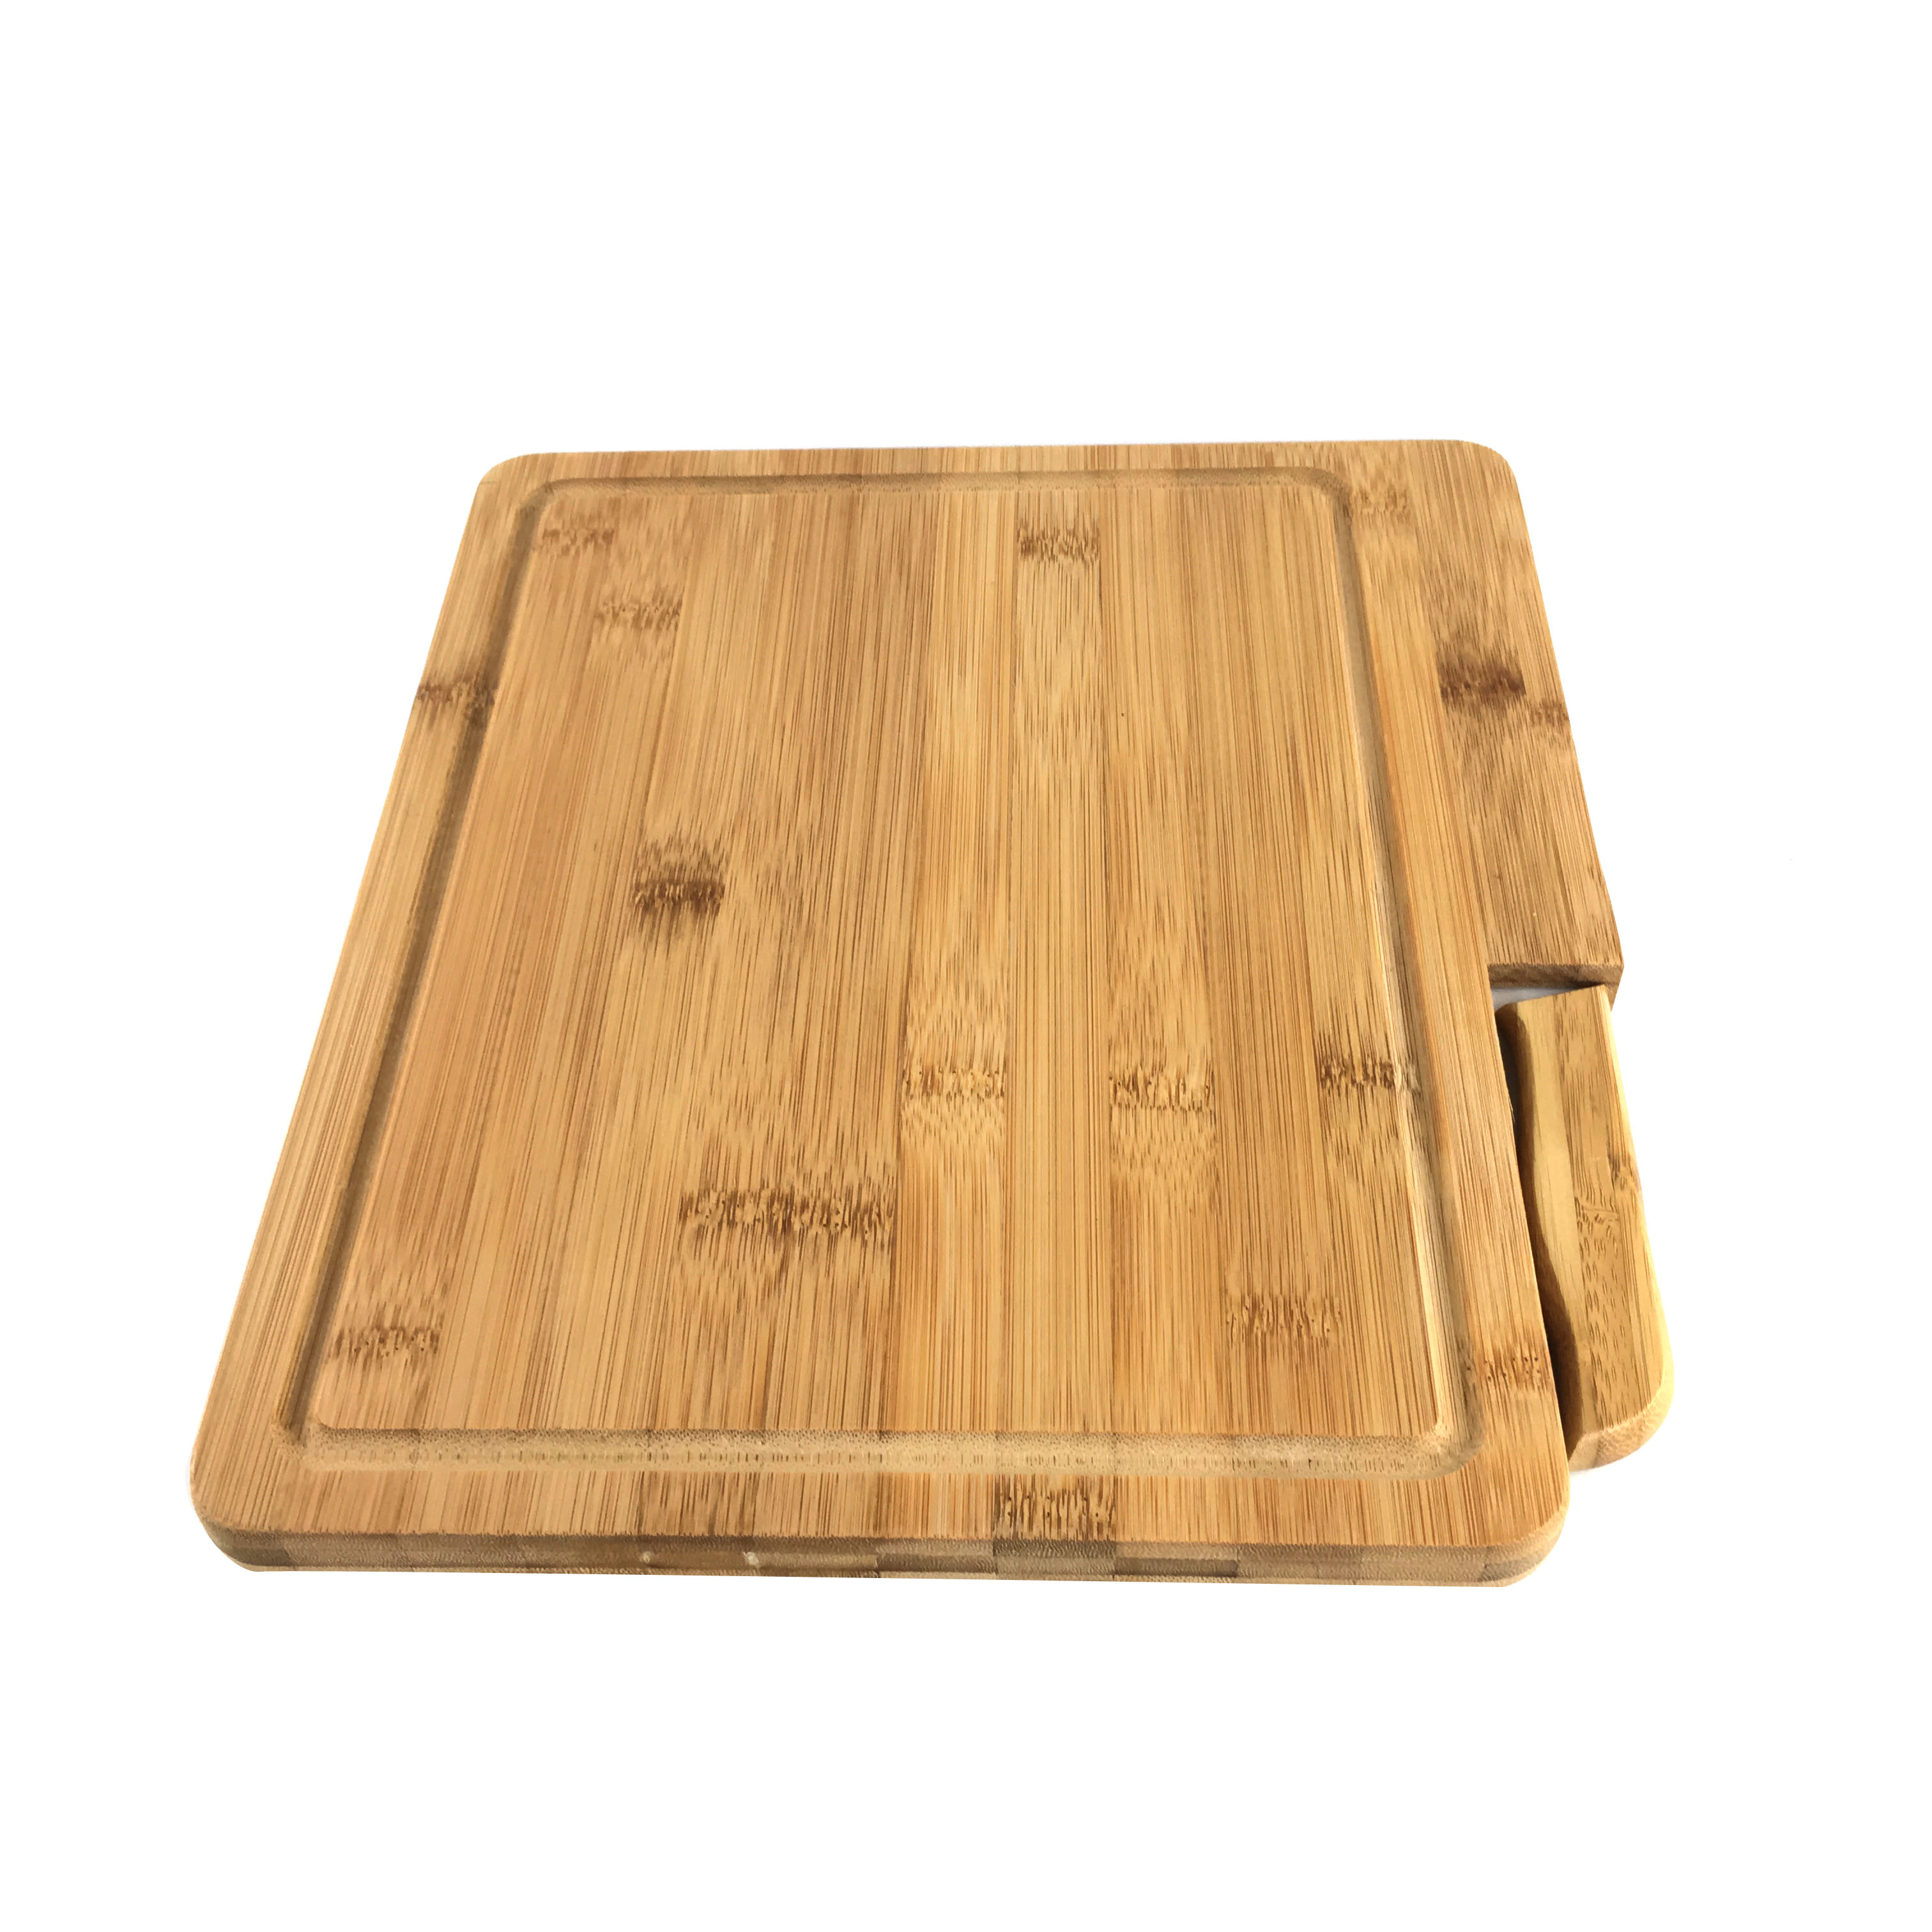 Bamboo Cutting Board With Build In Knife Homex Homex